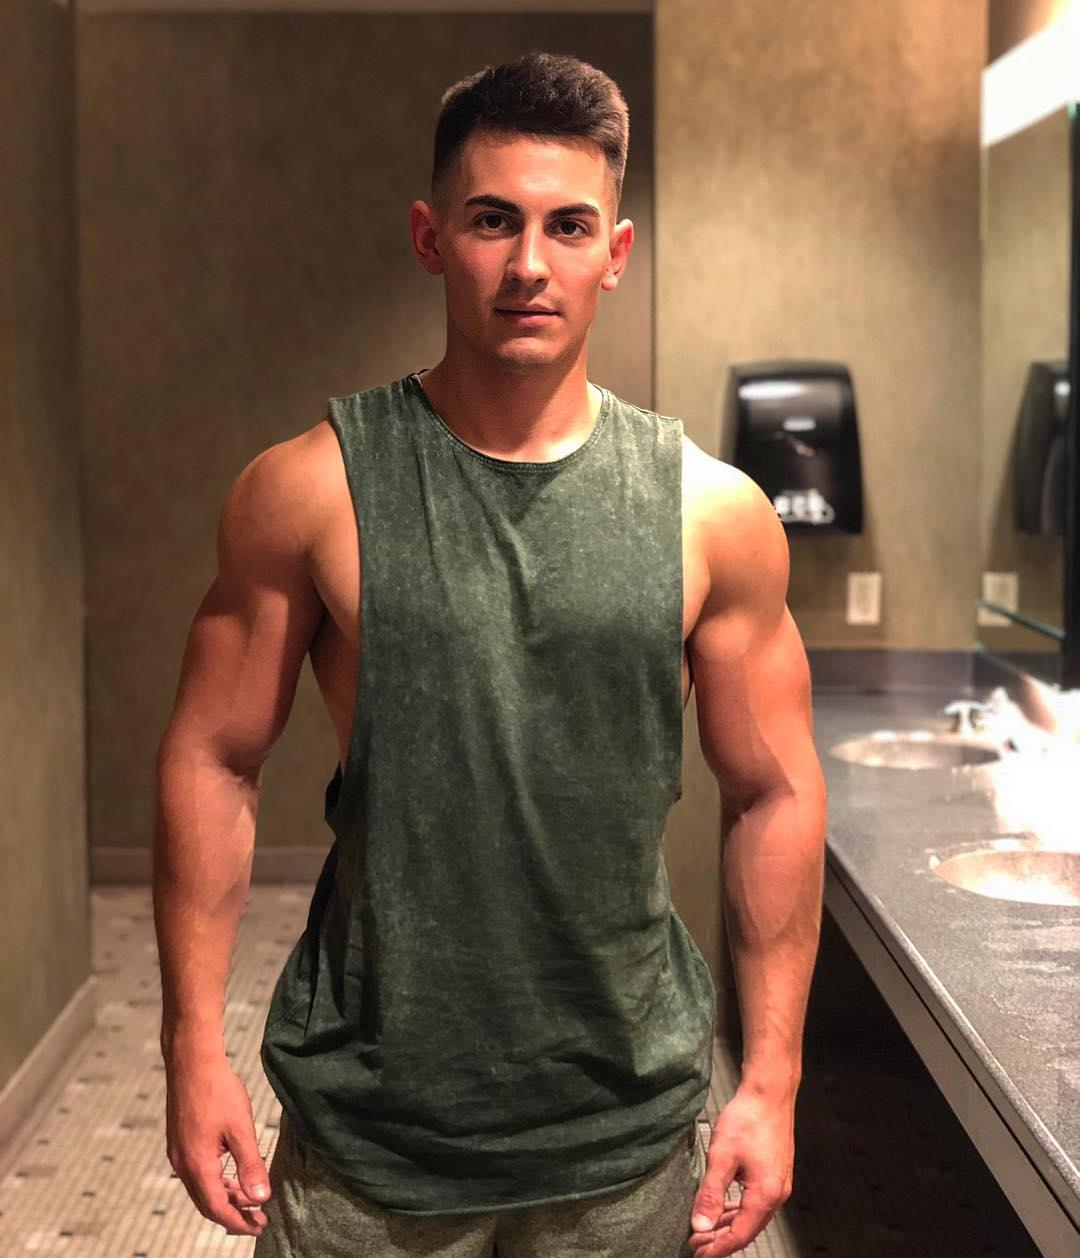 cute-bad-boys-young-college-athlete-dude-hot-bro-big-biceps-strong-arms